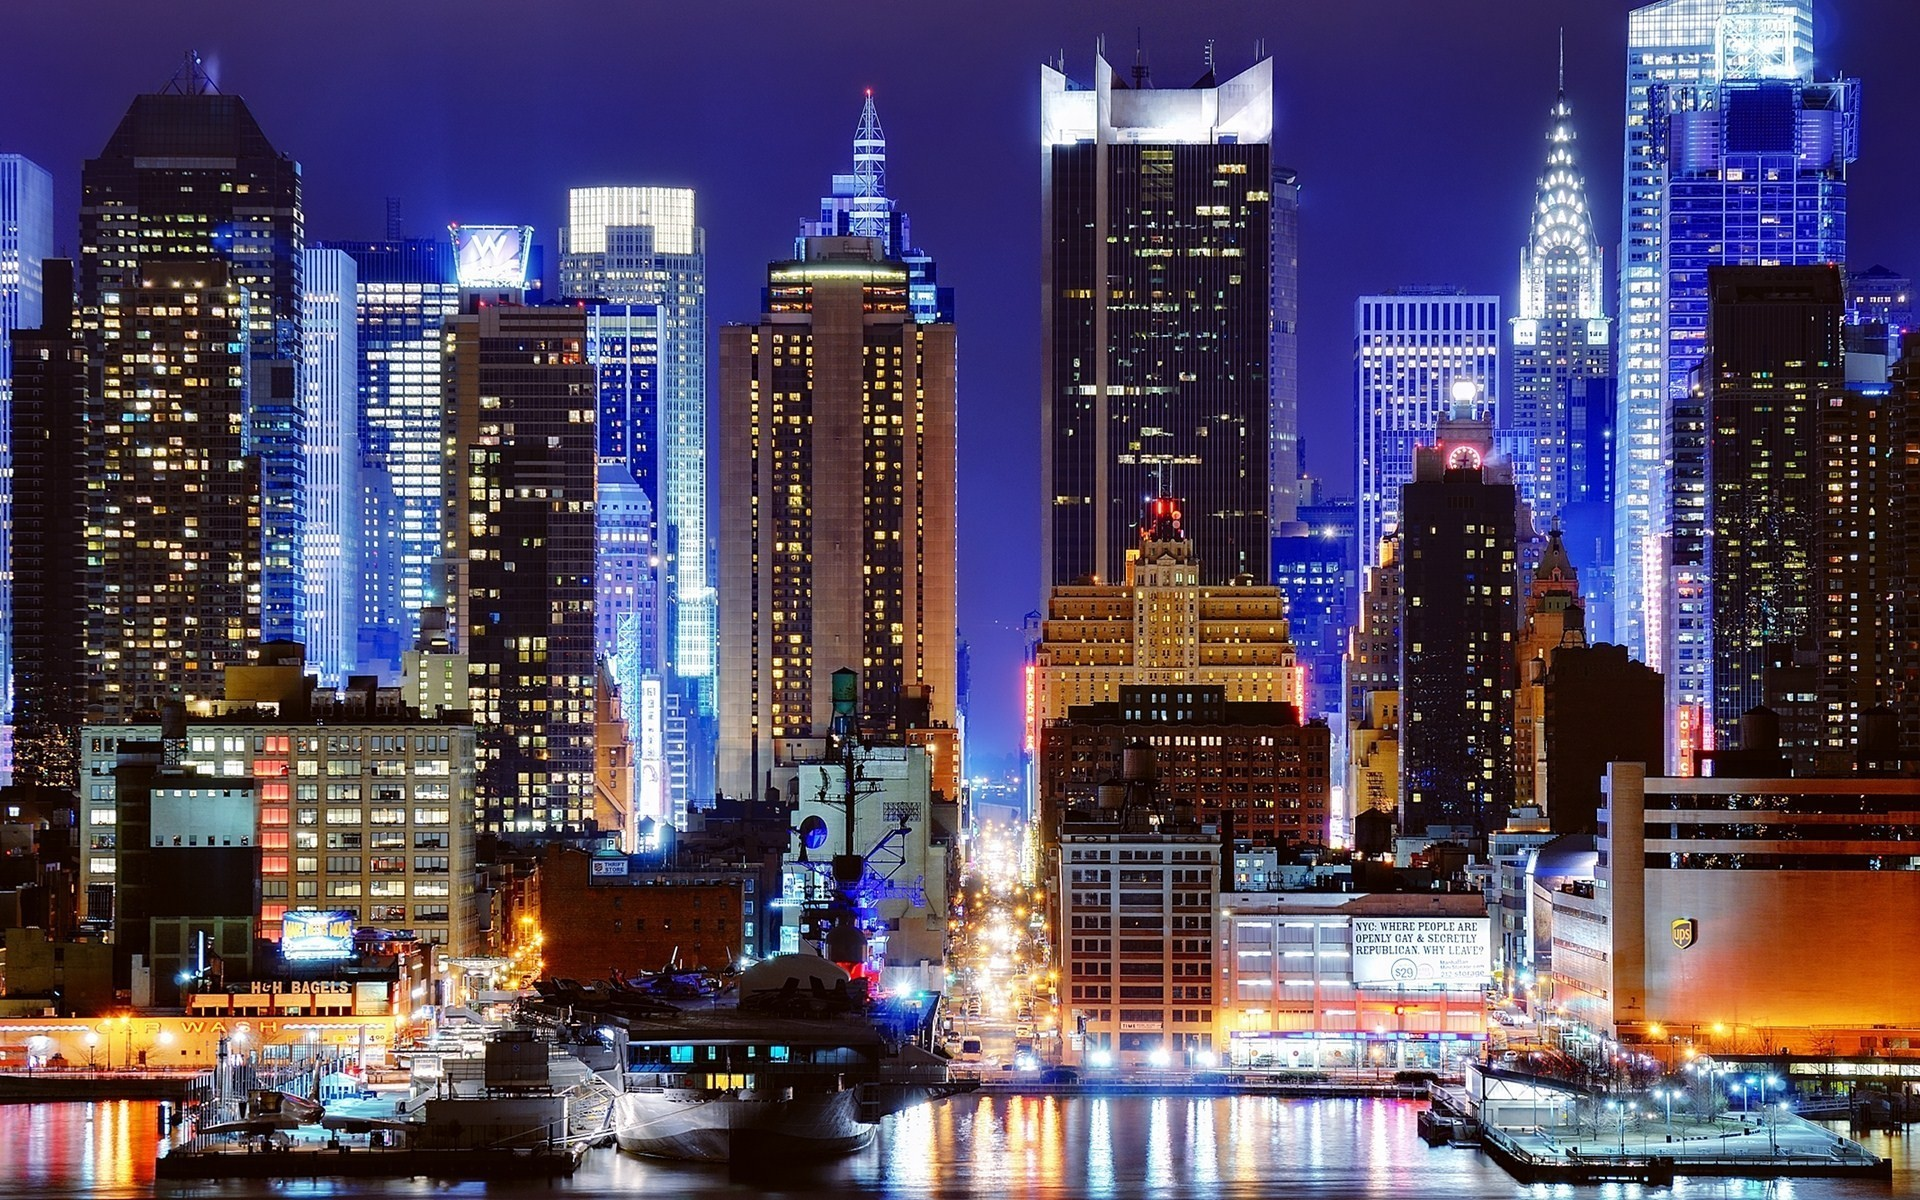 Cityscapes Night New York City Wallpaper 1920x1200